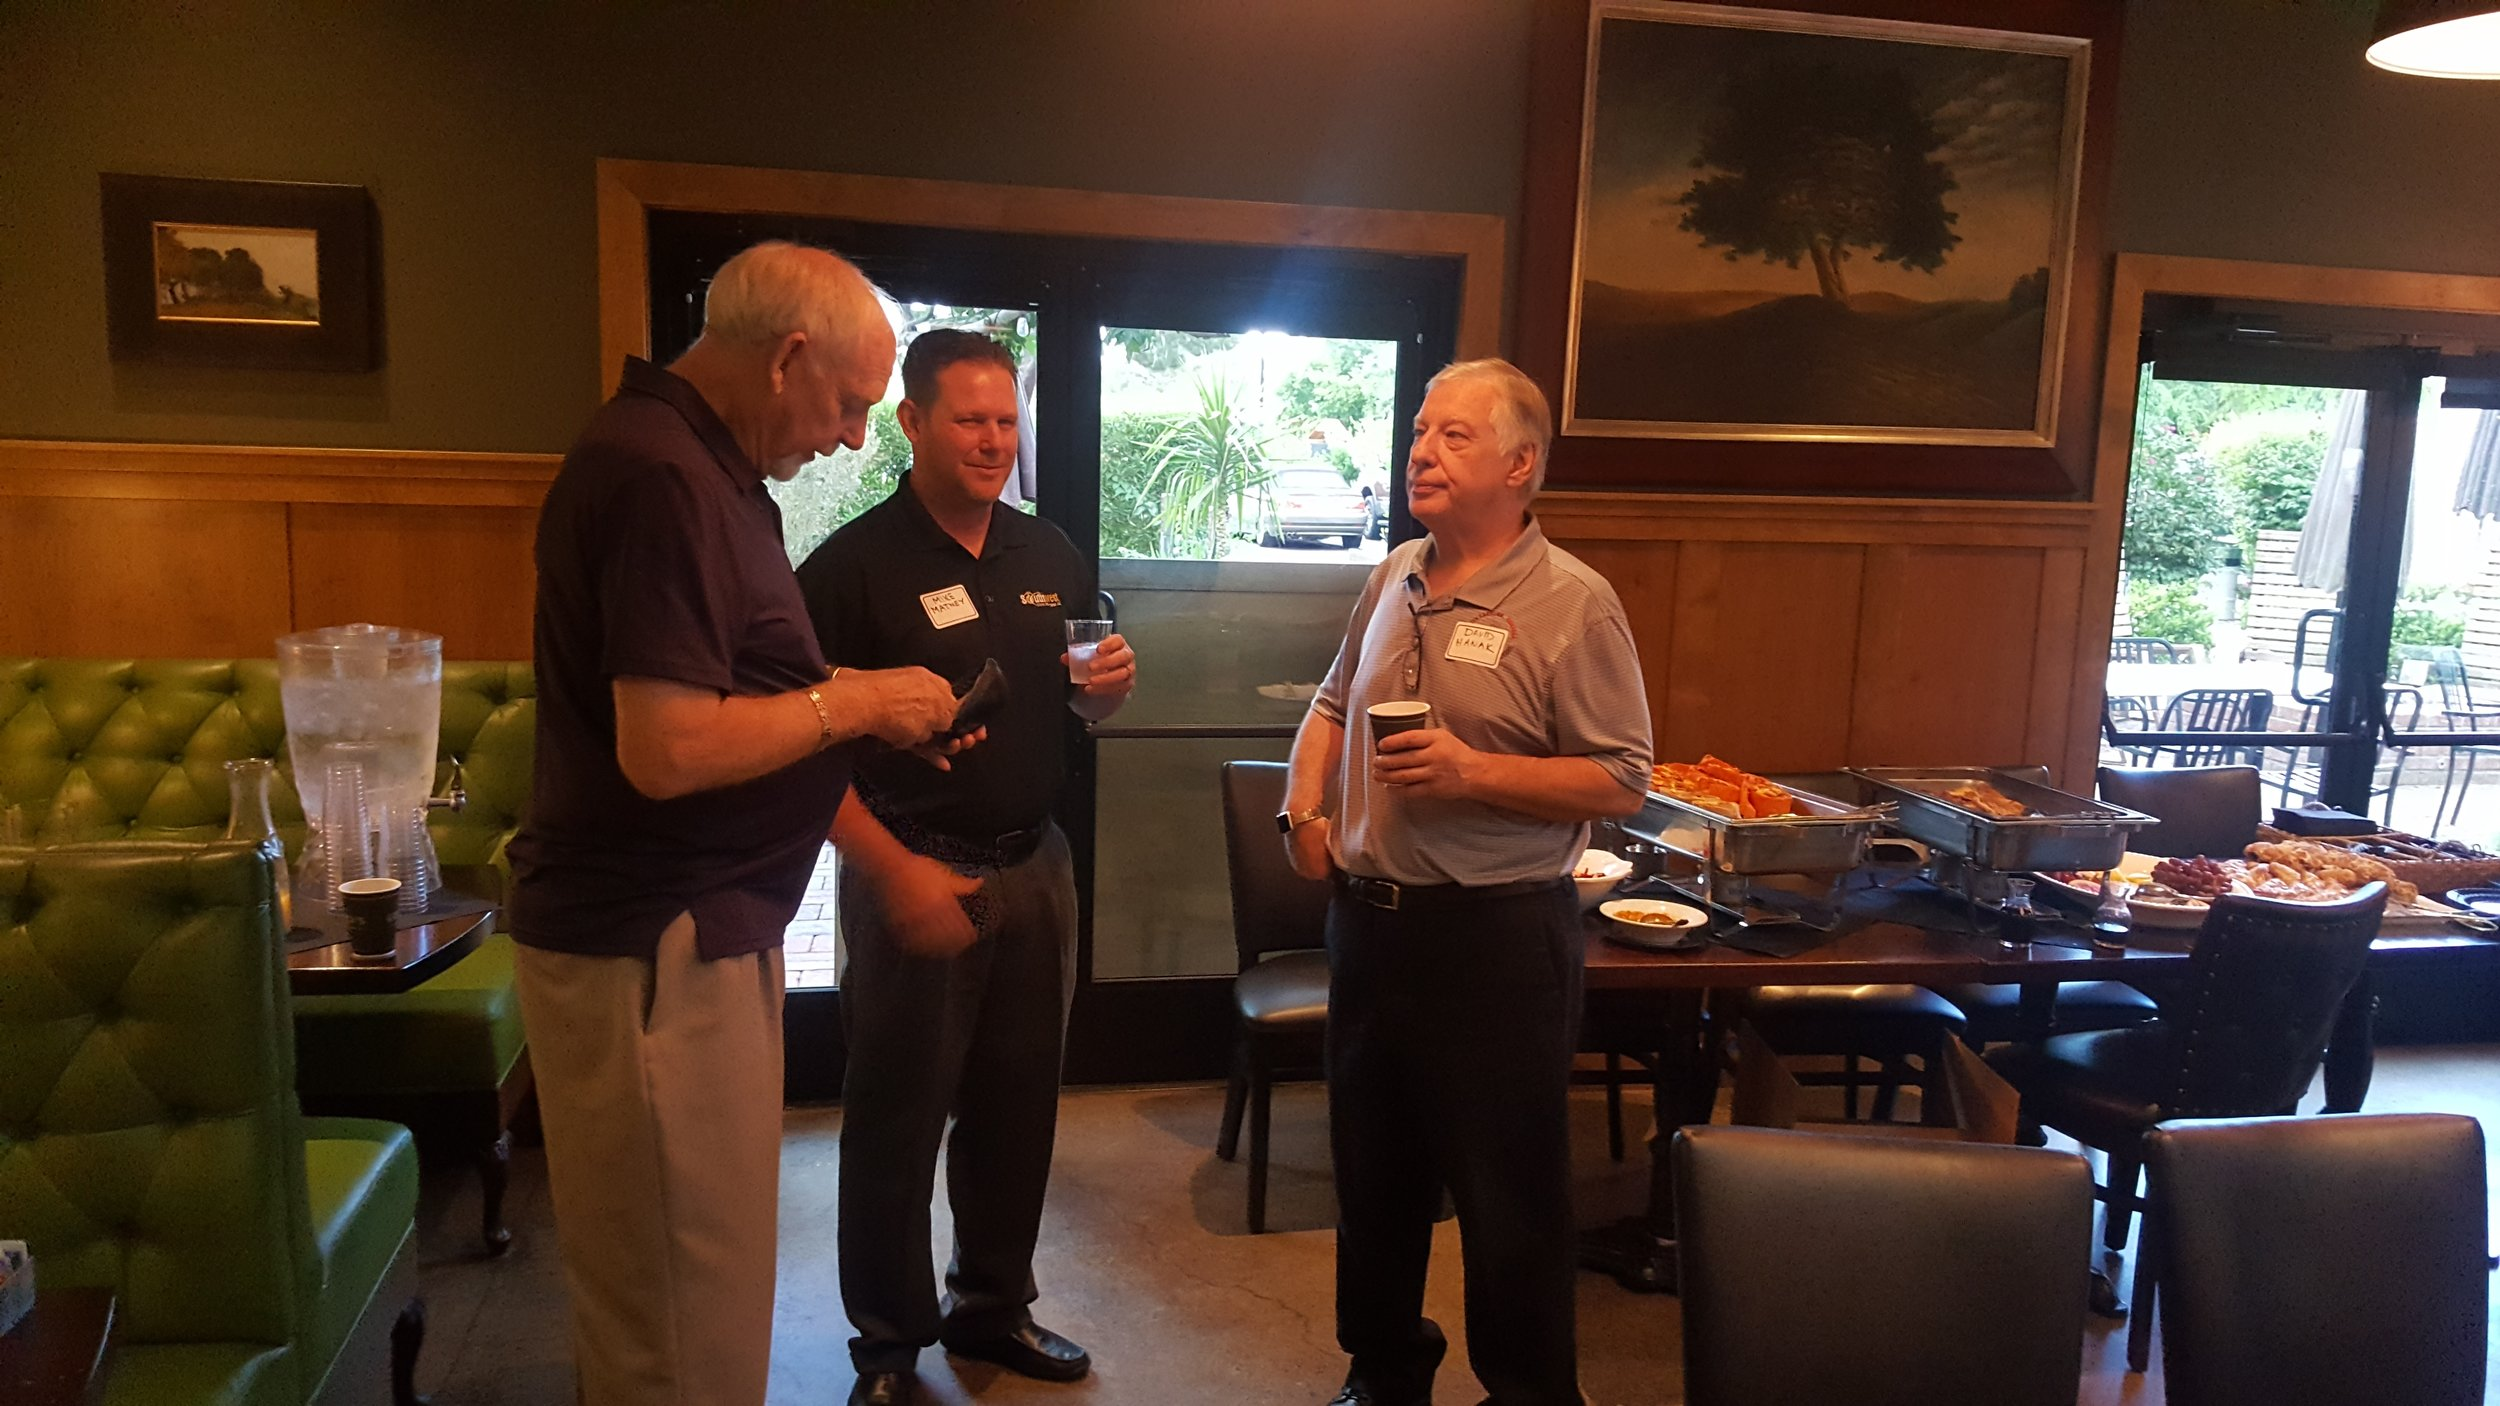 Greetings - Dave Hanek, PA Chi Omicron '79 (R) visits with Bill Wienke, TX Alpha '60 (L) and Mike Matney, MI Alpha